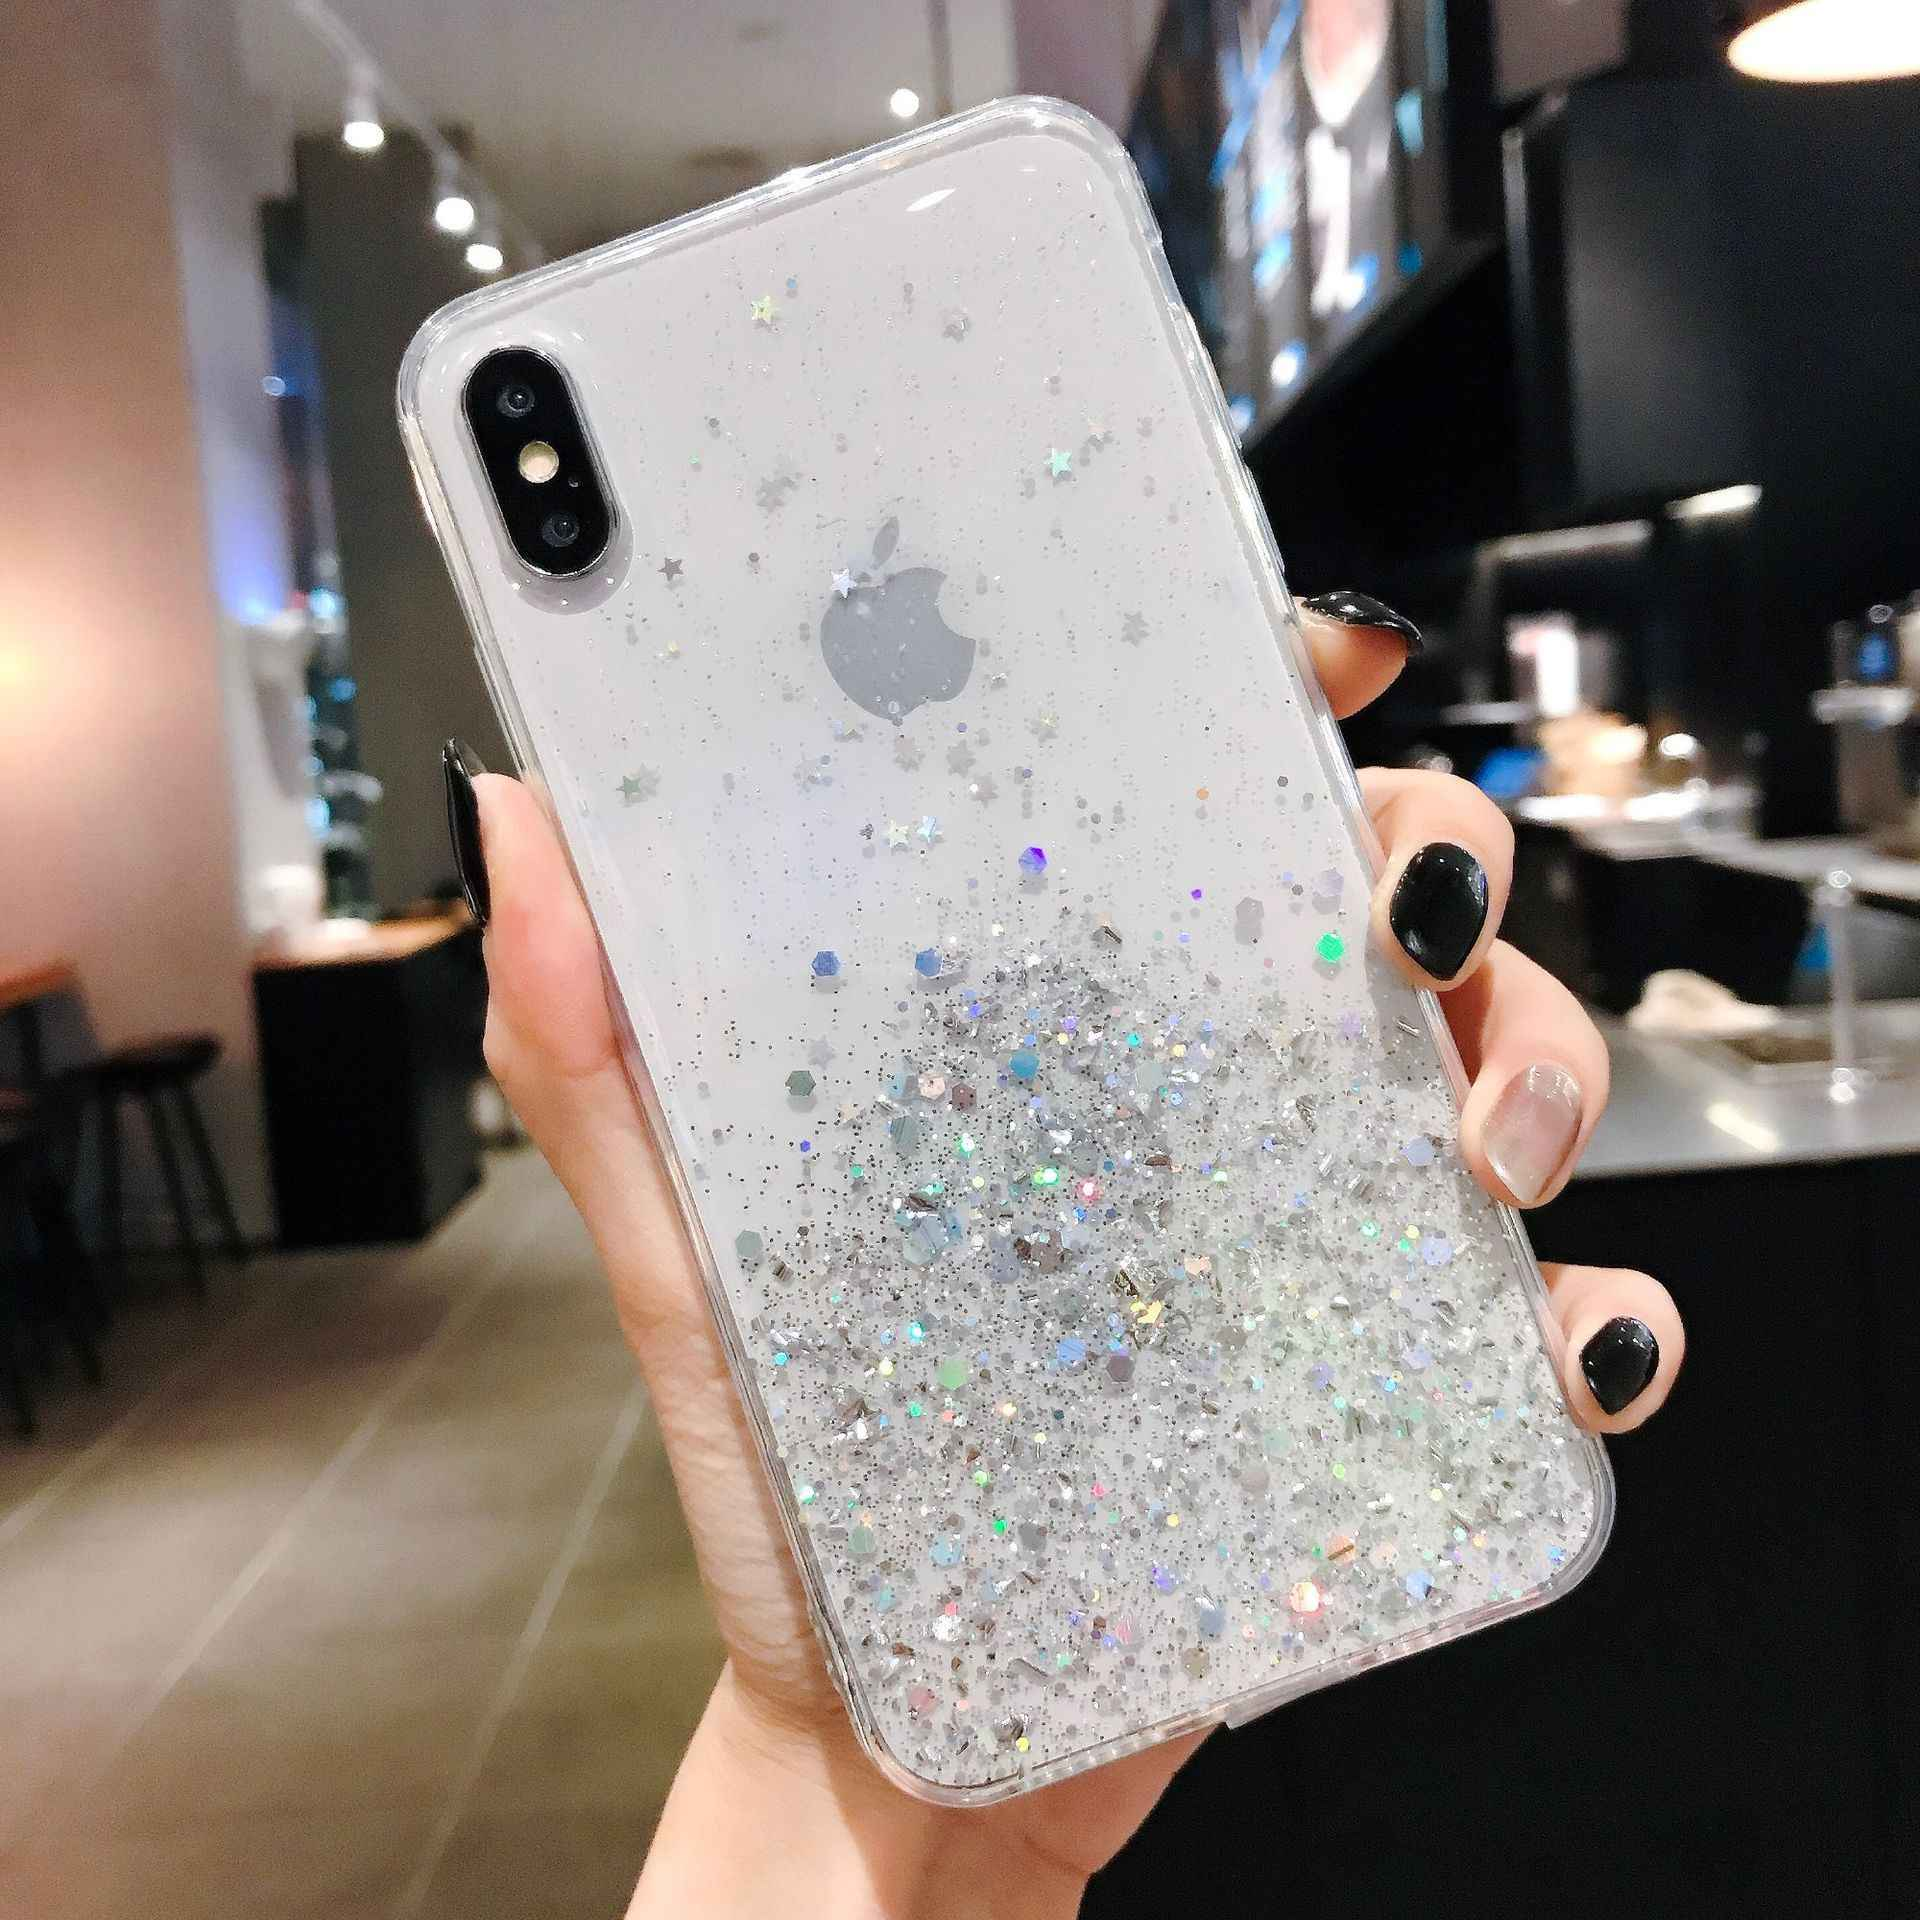 Iphone XS Iphone 11Pro ケース 11 プロマックスケース iPhoneXS ケース iphone 用 × 1 ケースカバー iphone 6 7 8 6 S プラスケース